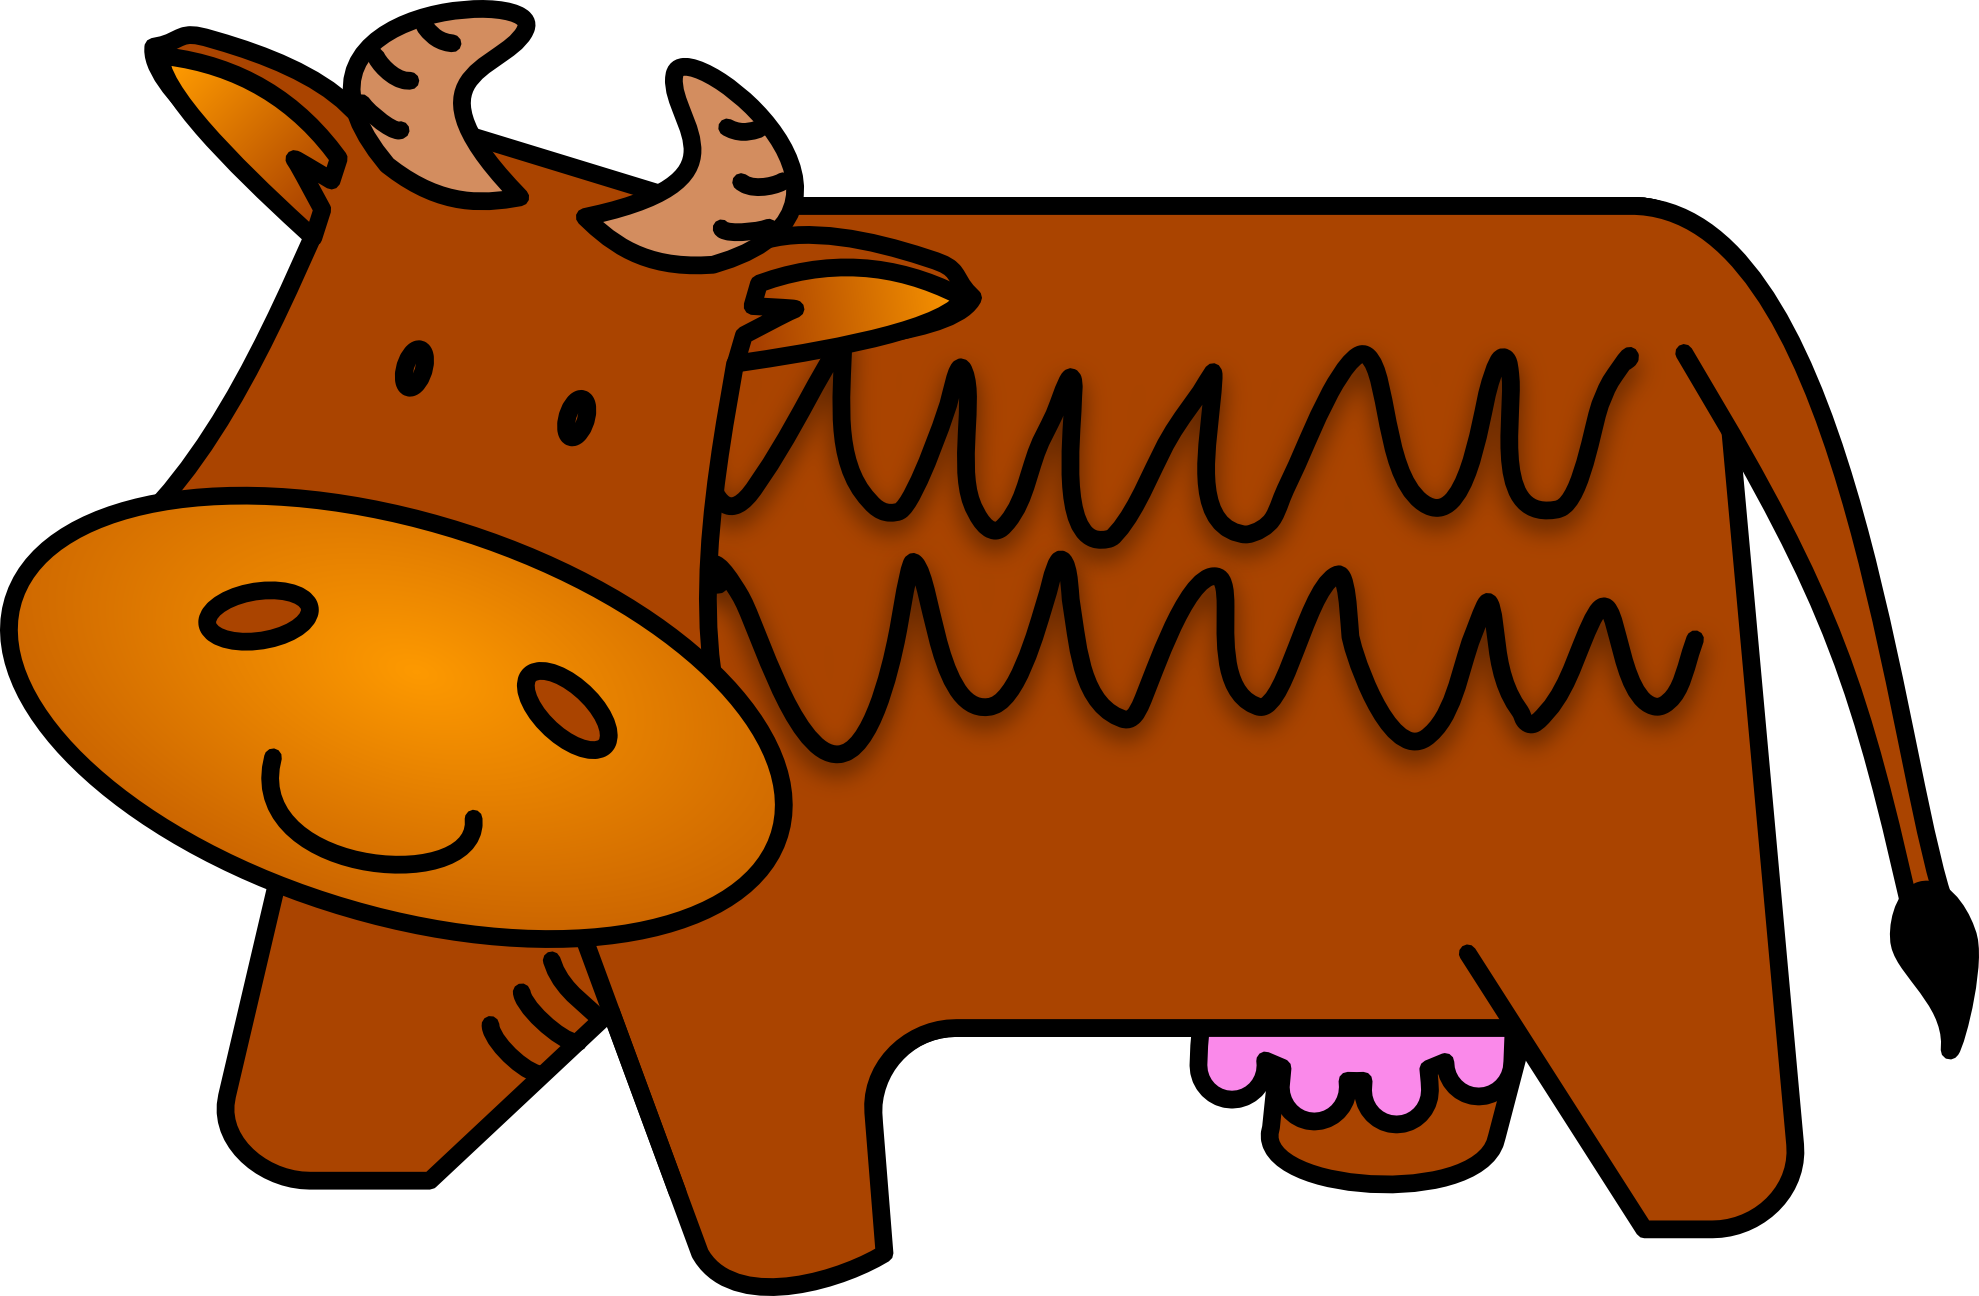 Cows clipart fence. Brown cow